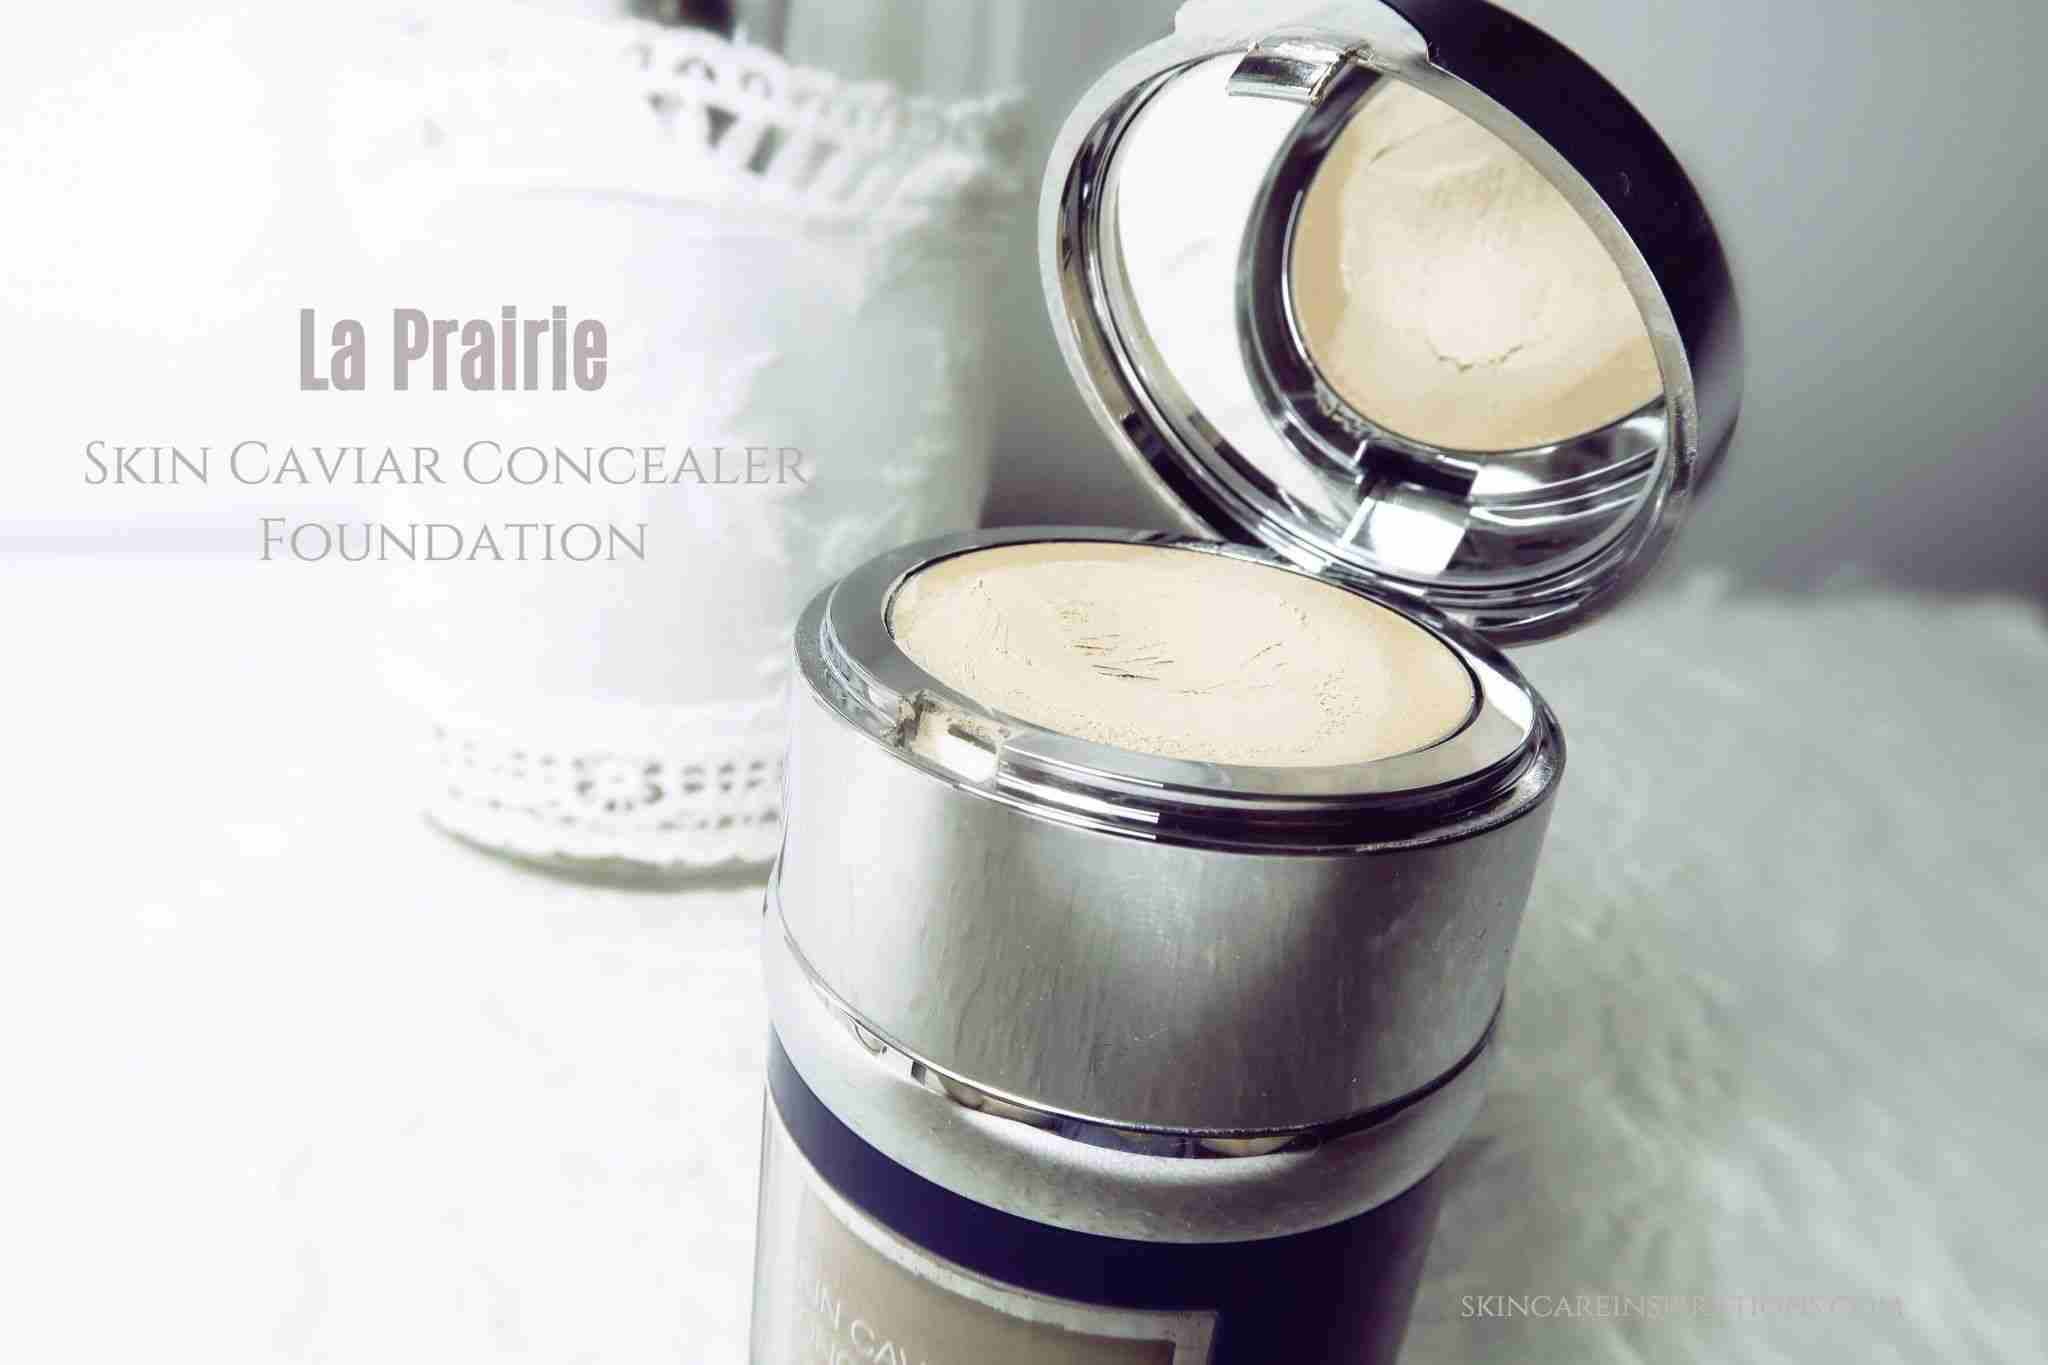 Skin Caviar Concealer Foundation Review 1 (1)